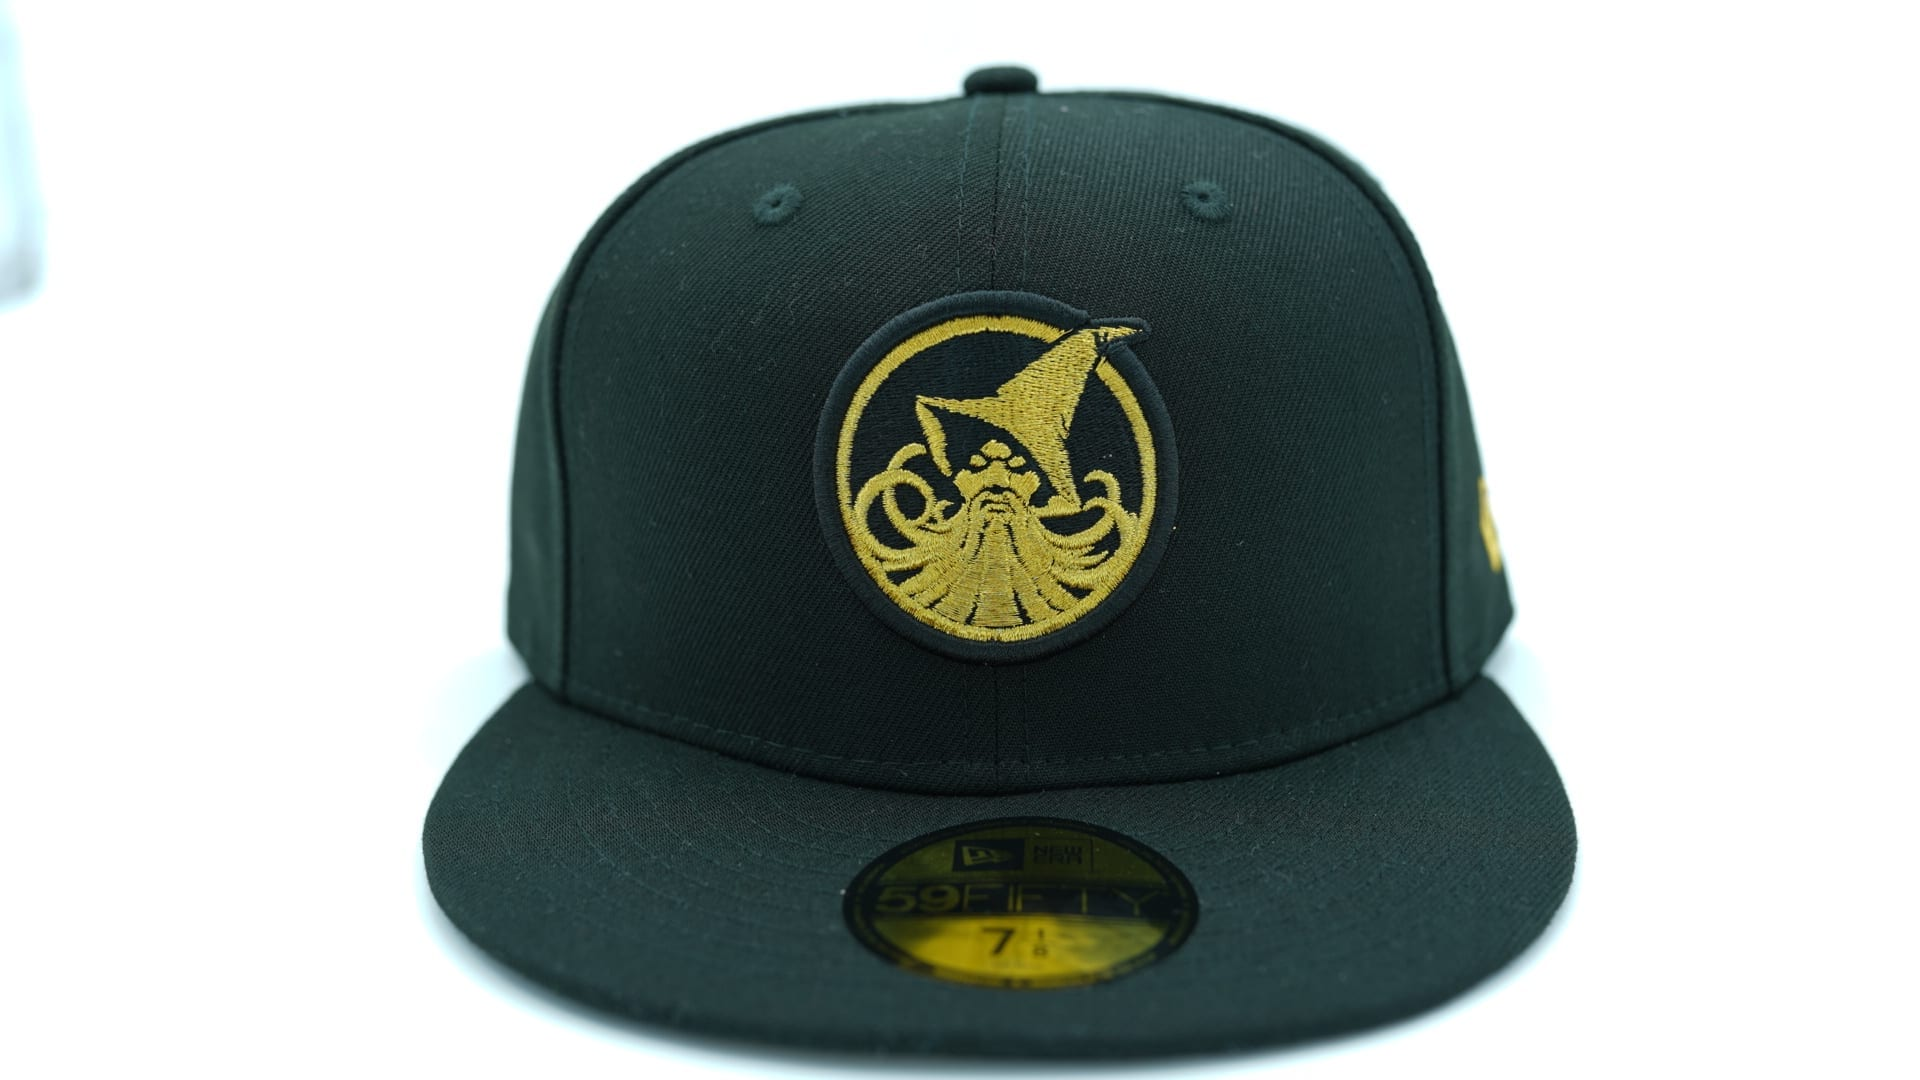 Suede Cross Bats 59Fifty Fitted Cap